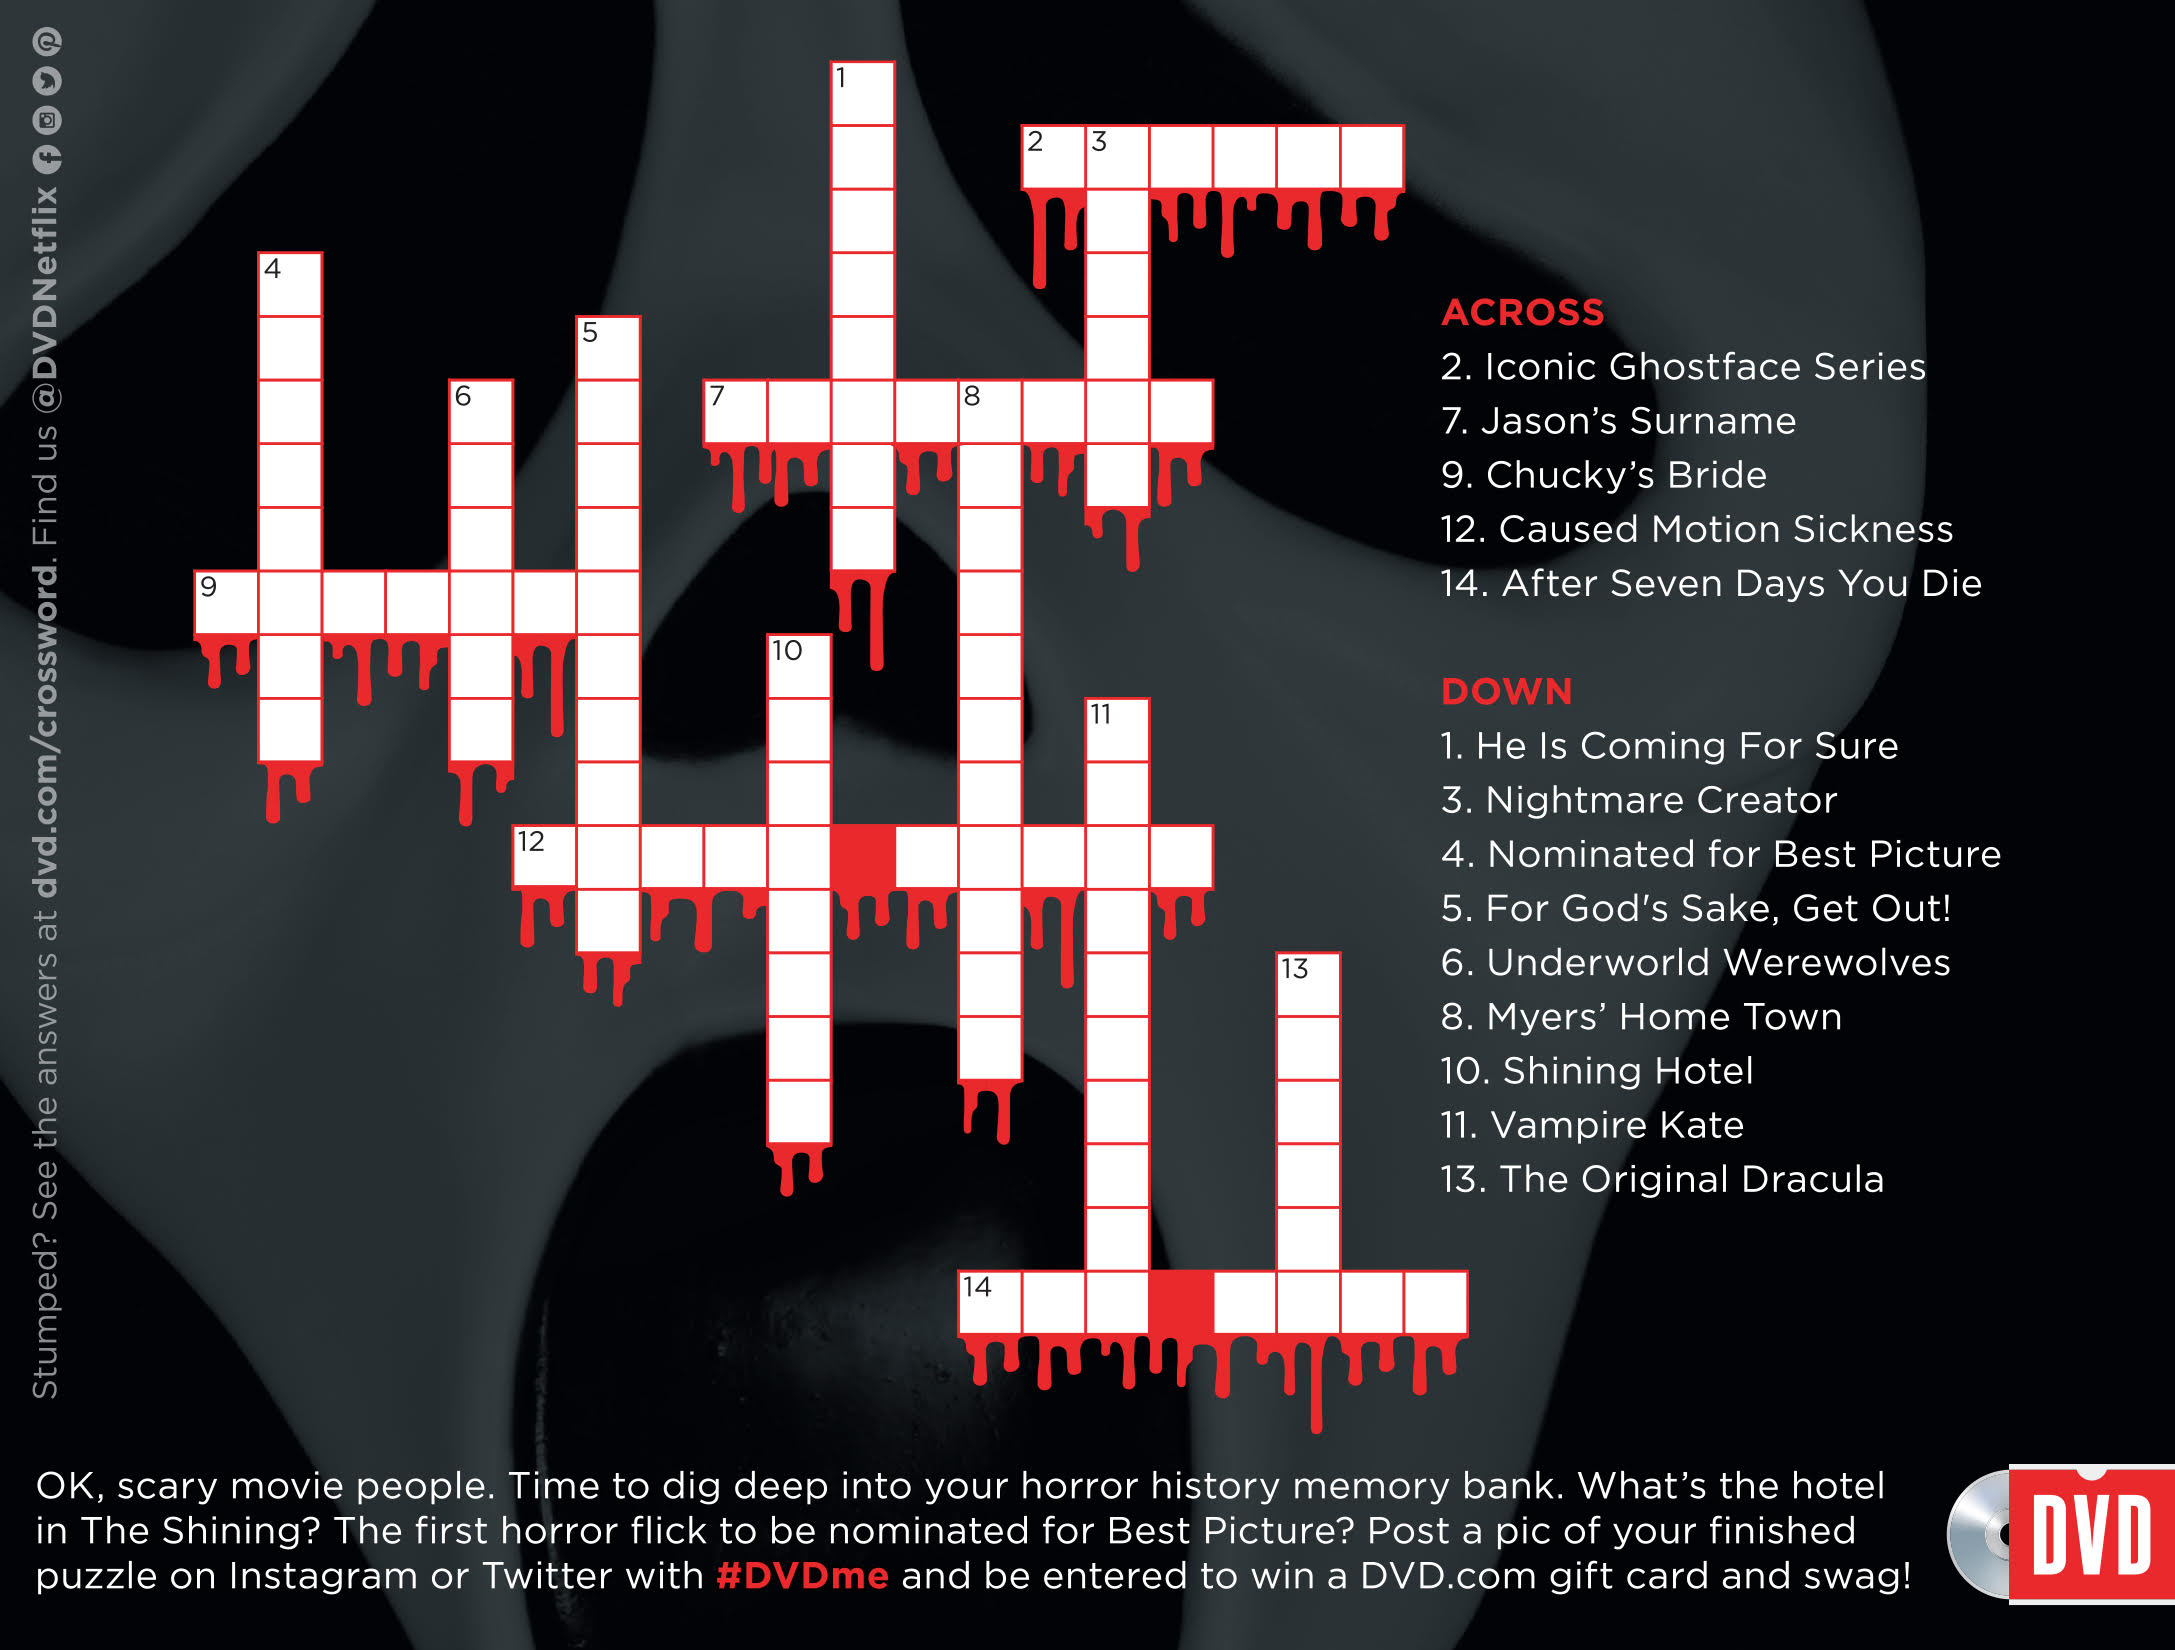 halloween films crossword puzzle - netflix dvd blog